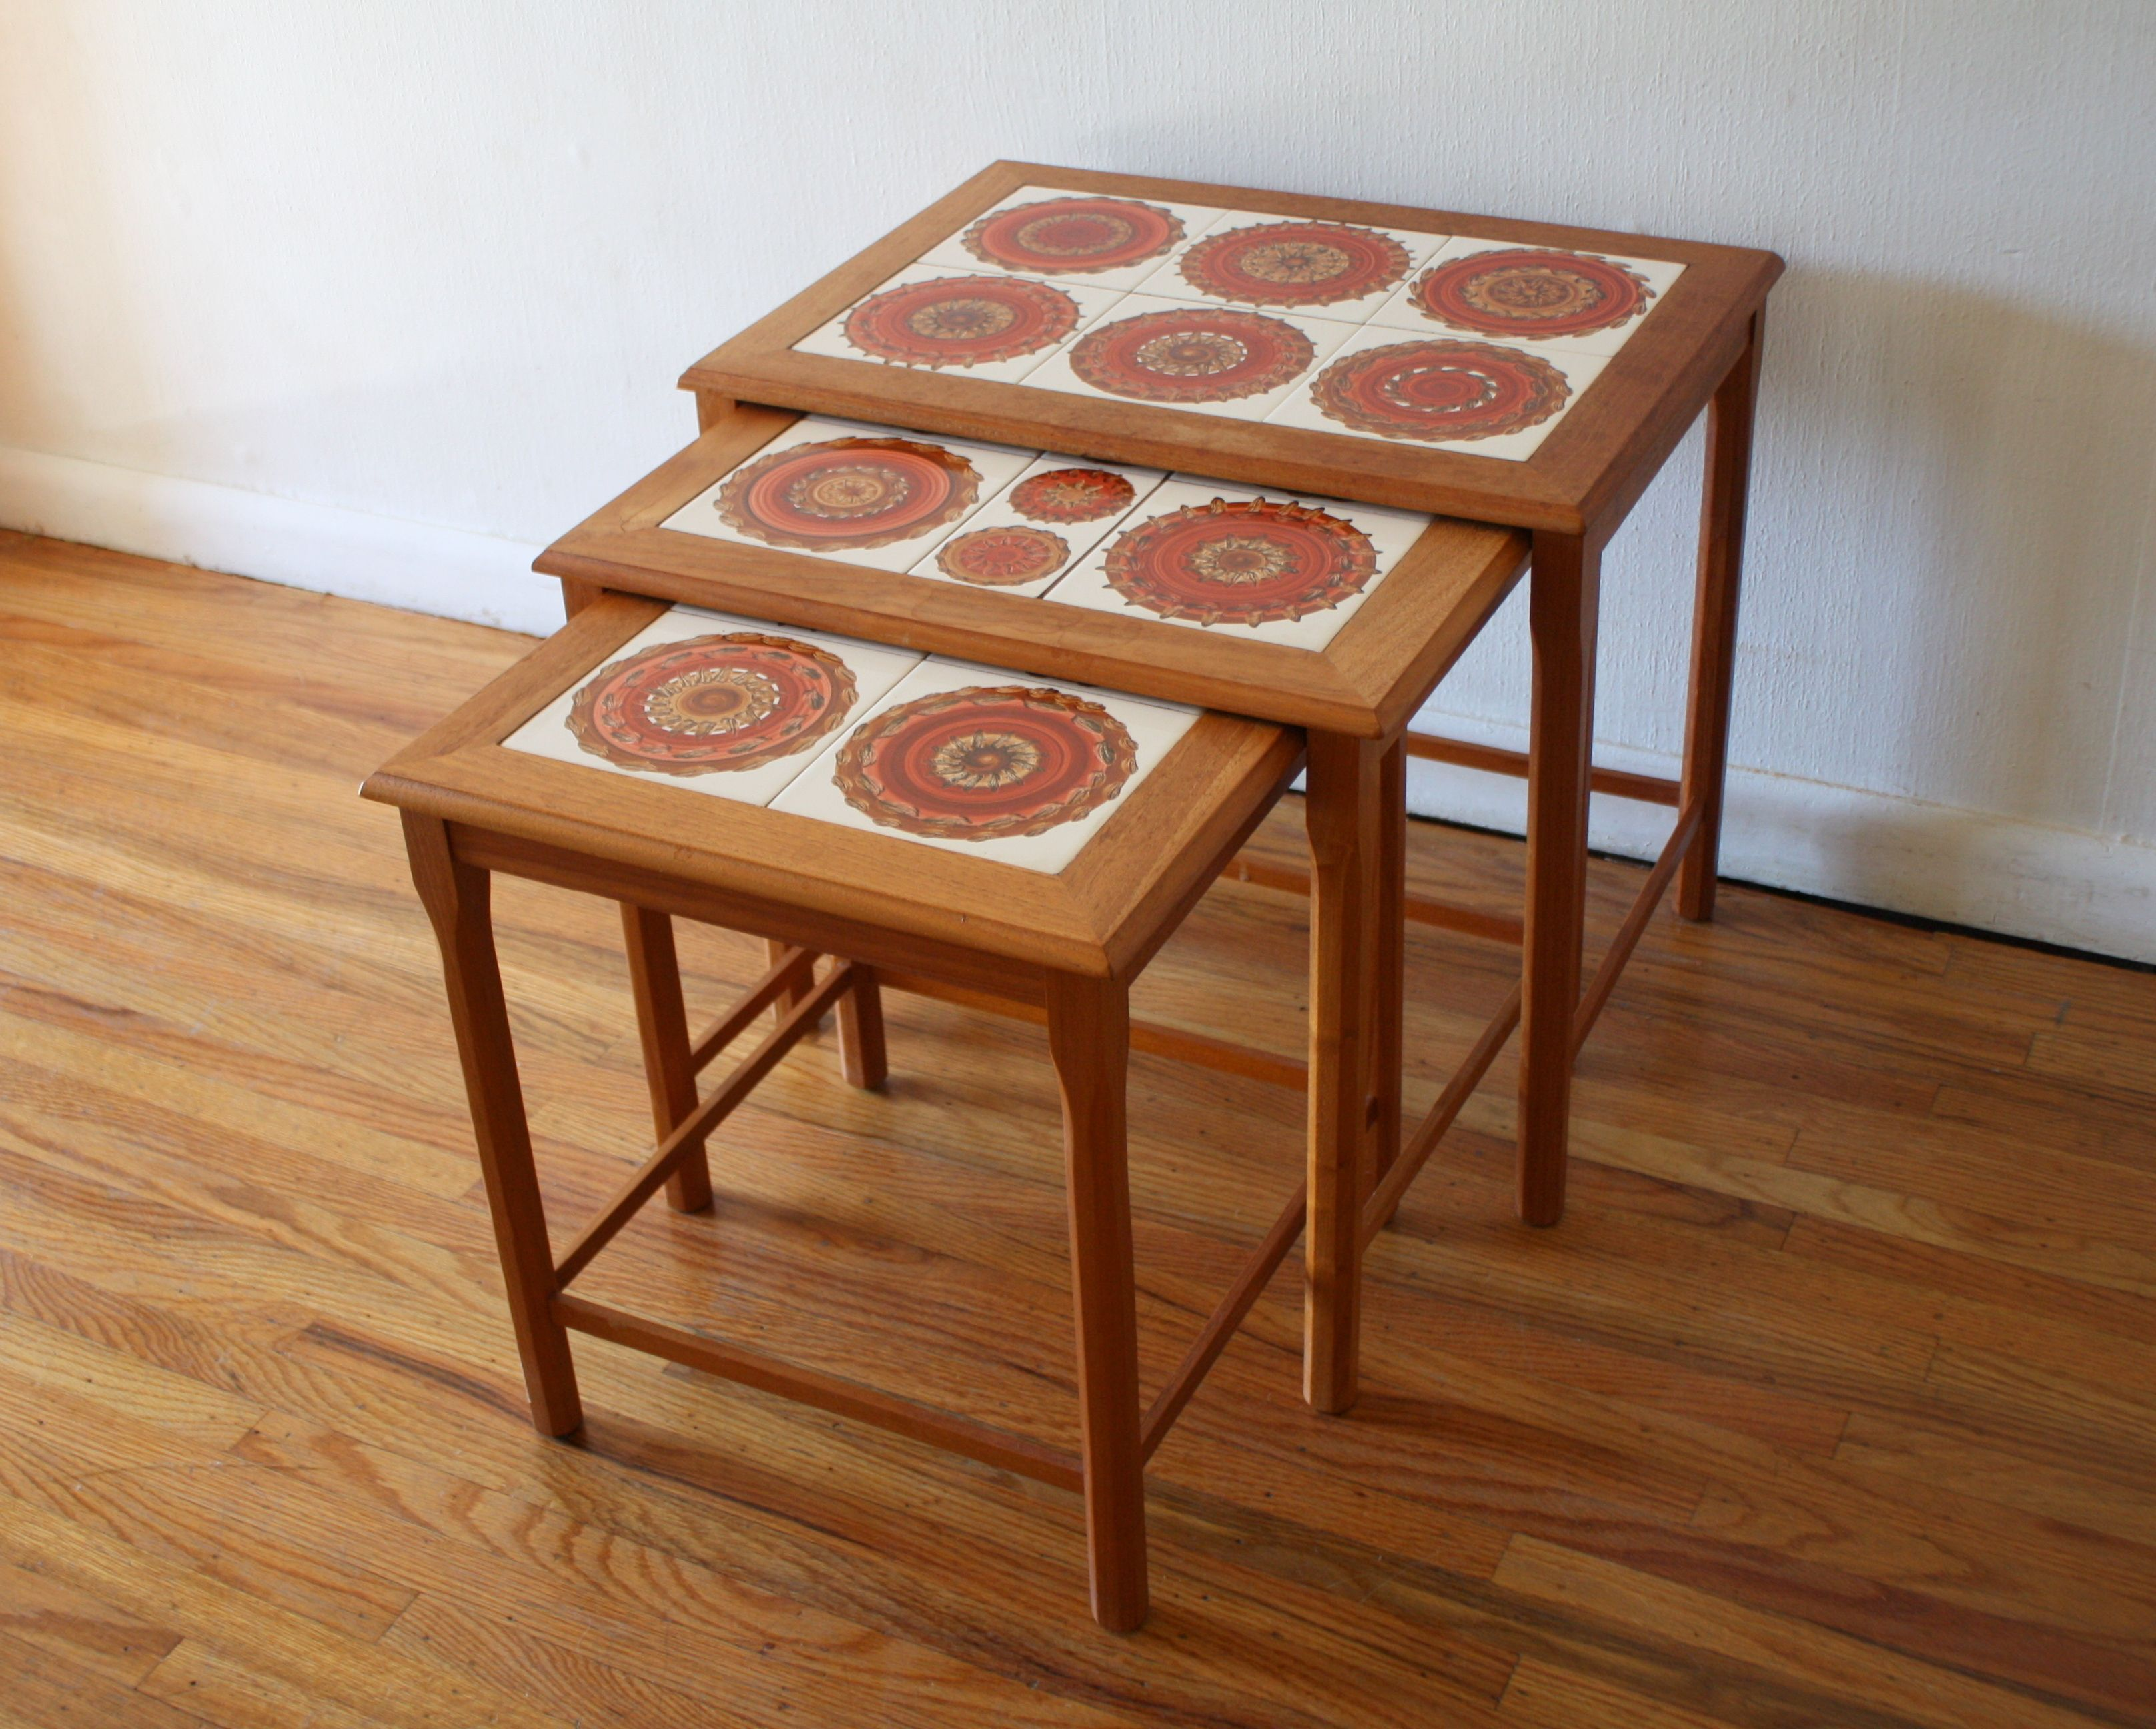 Mid Century Modern Danish Teak Nesting Tile Top Tables With Vibrant  Abstract Design